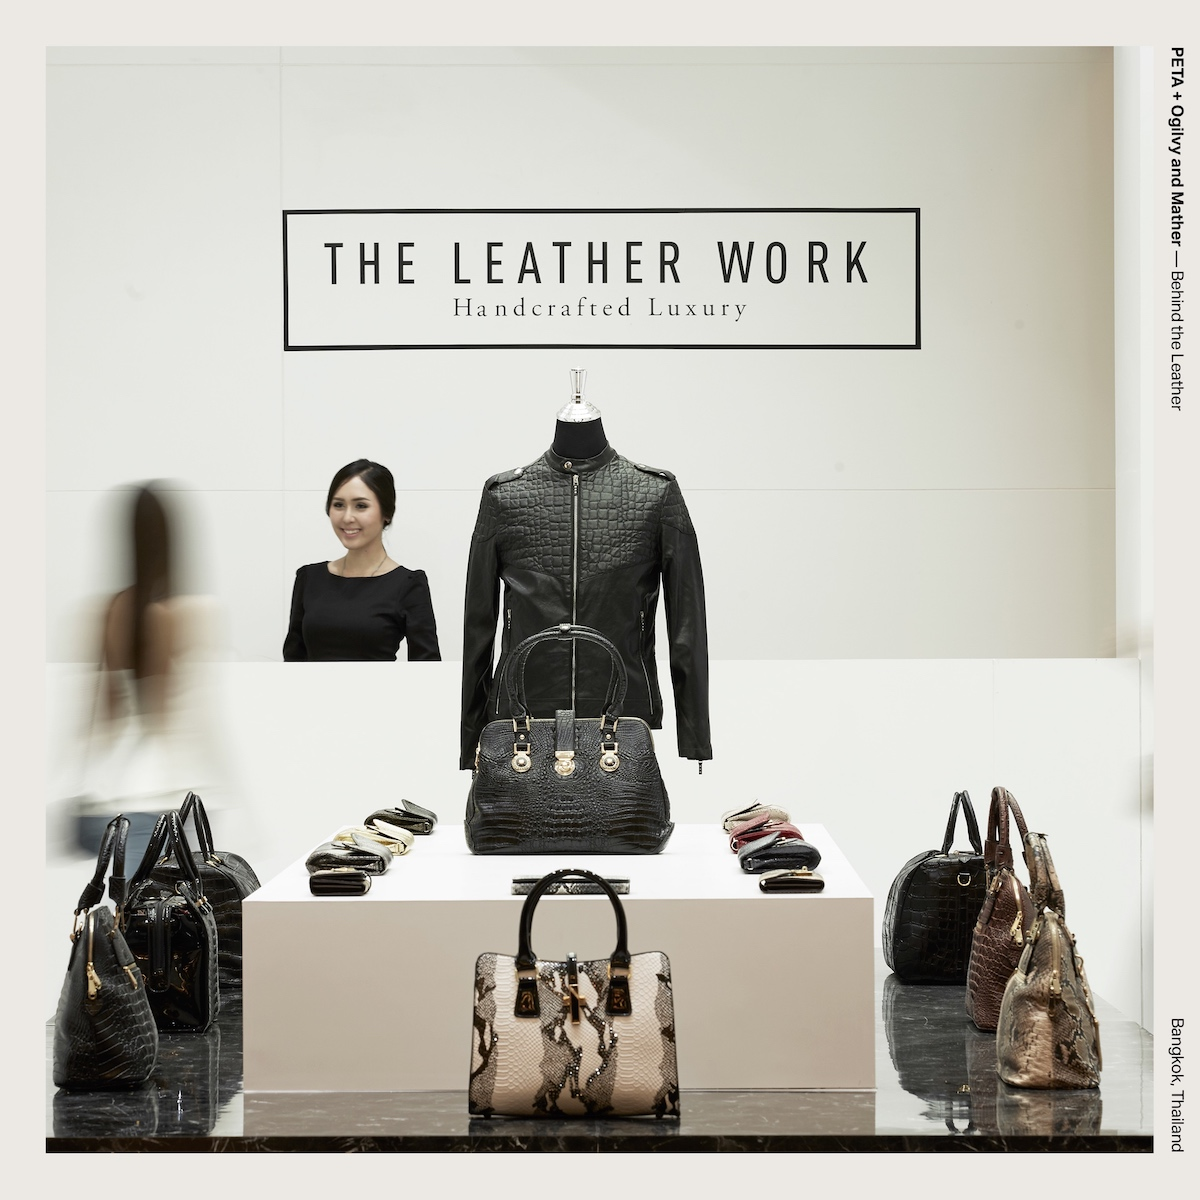 PETA + Ogilvy and Mather — Behind the Leather